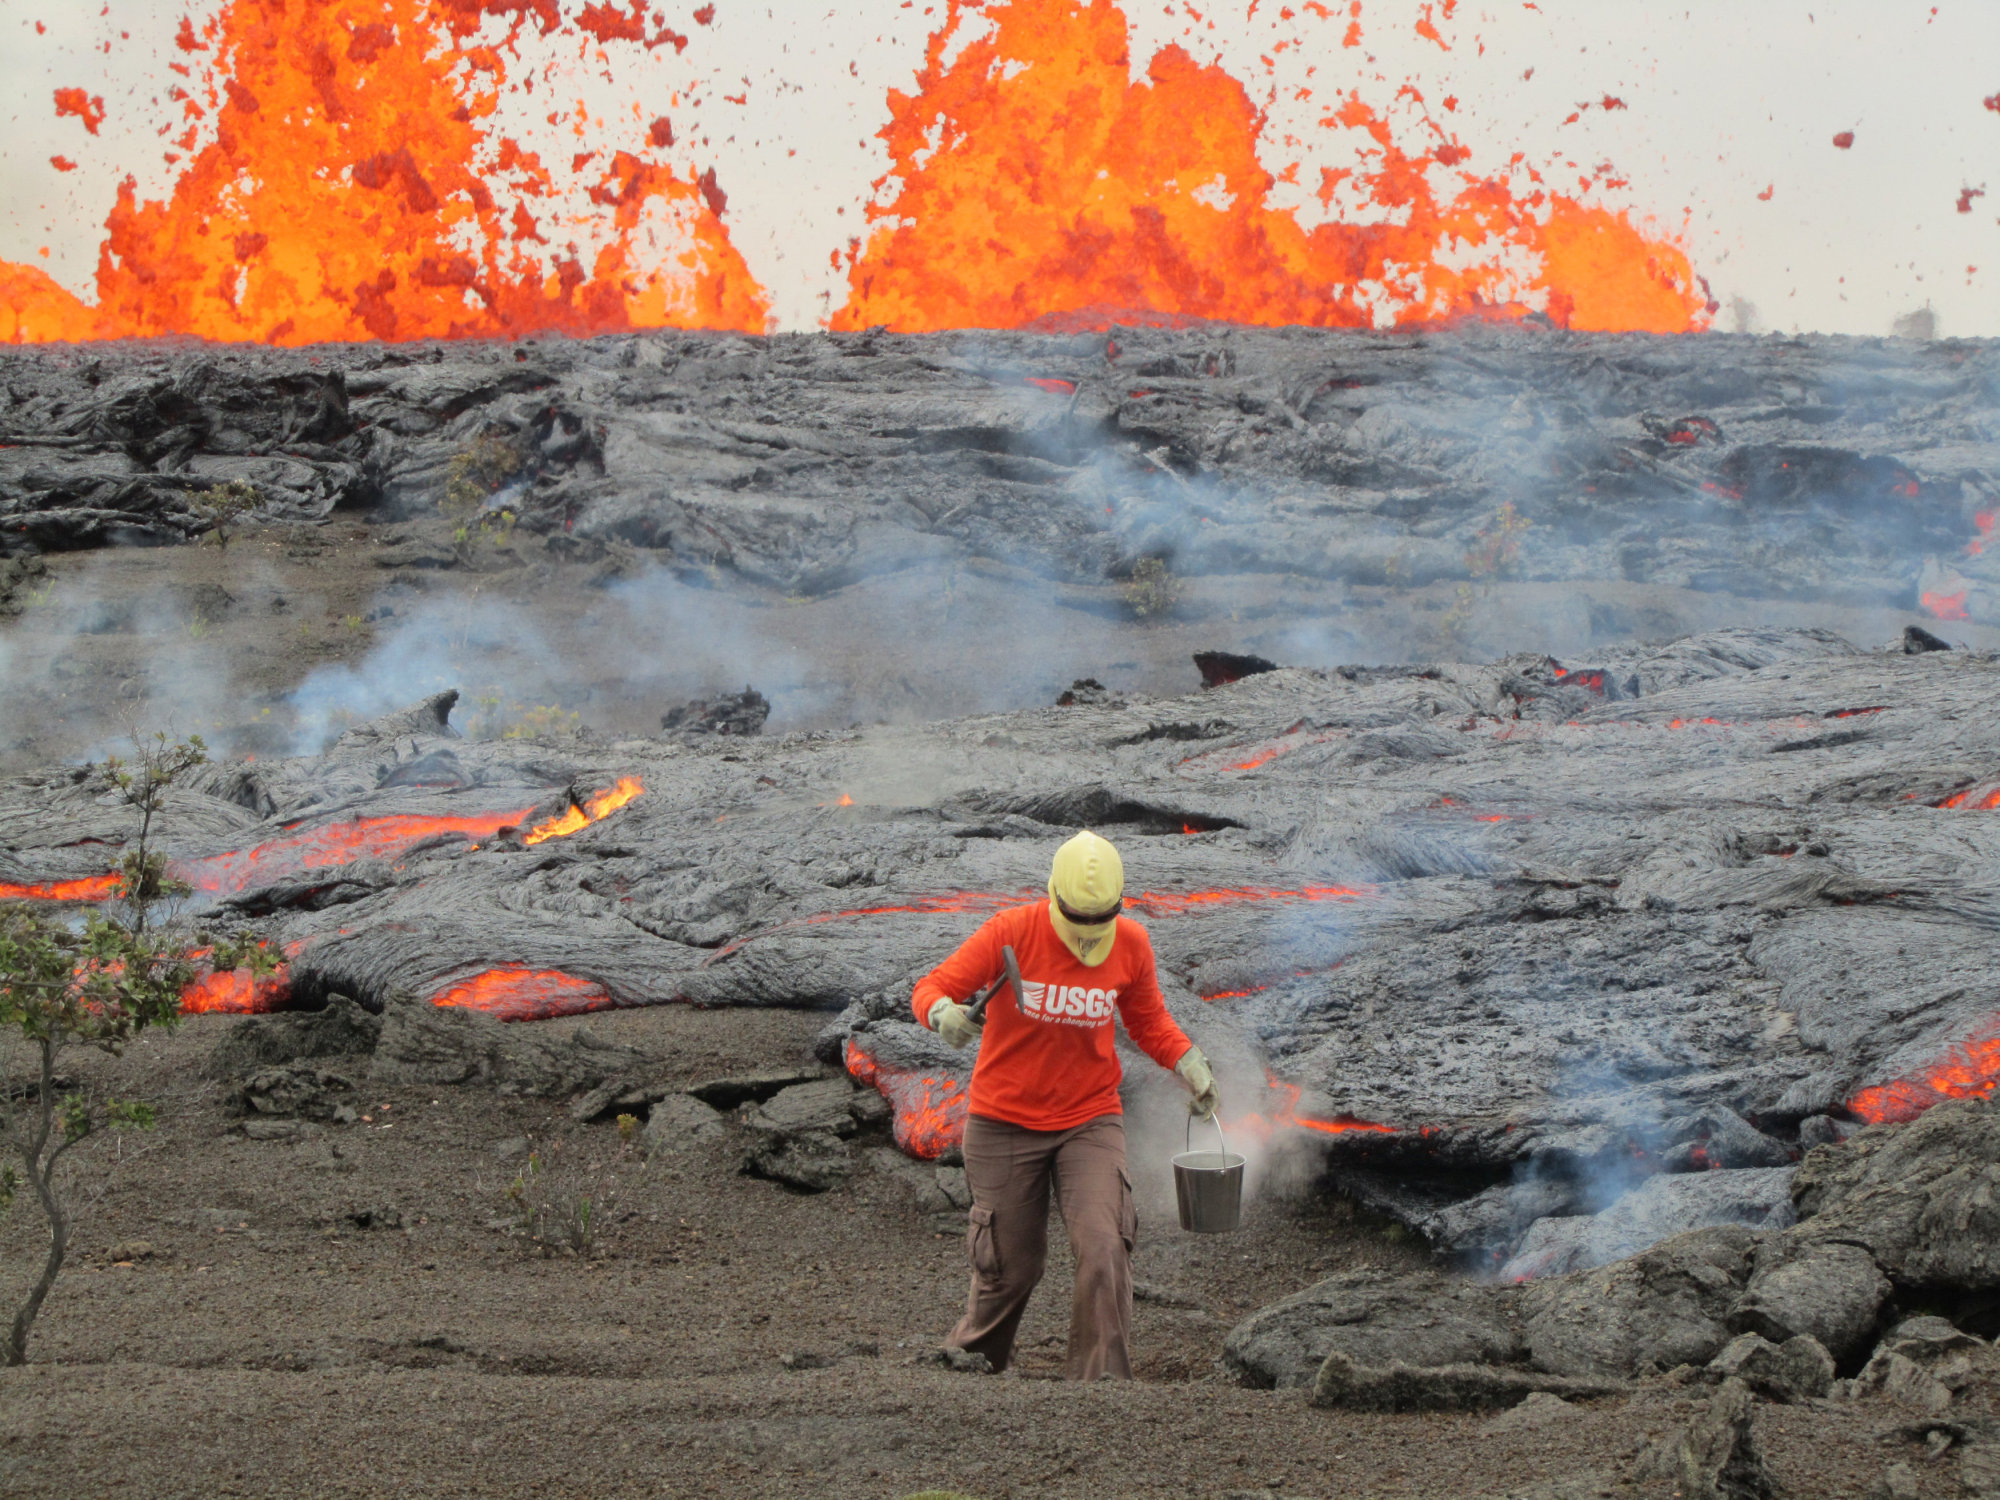 A geologist collects a sample of molten lava from the Kamoamoa eruption at Hawaii's Kilauea volcano in March 2011. | REUTERS